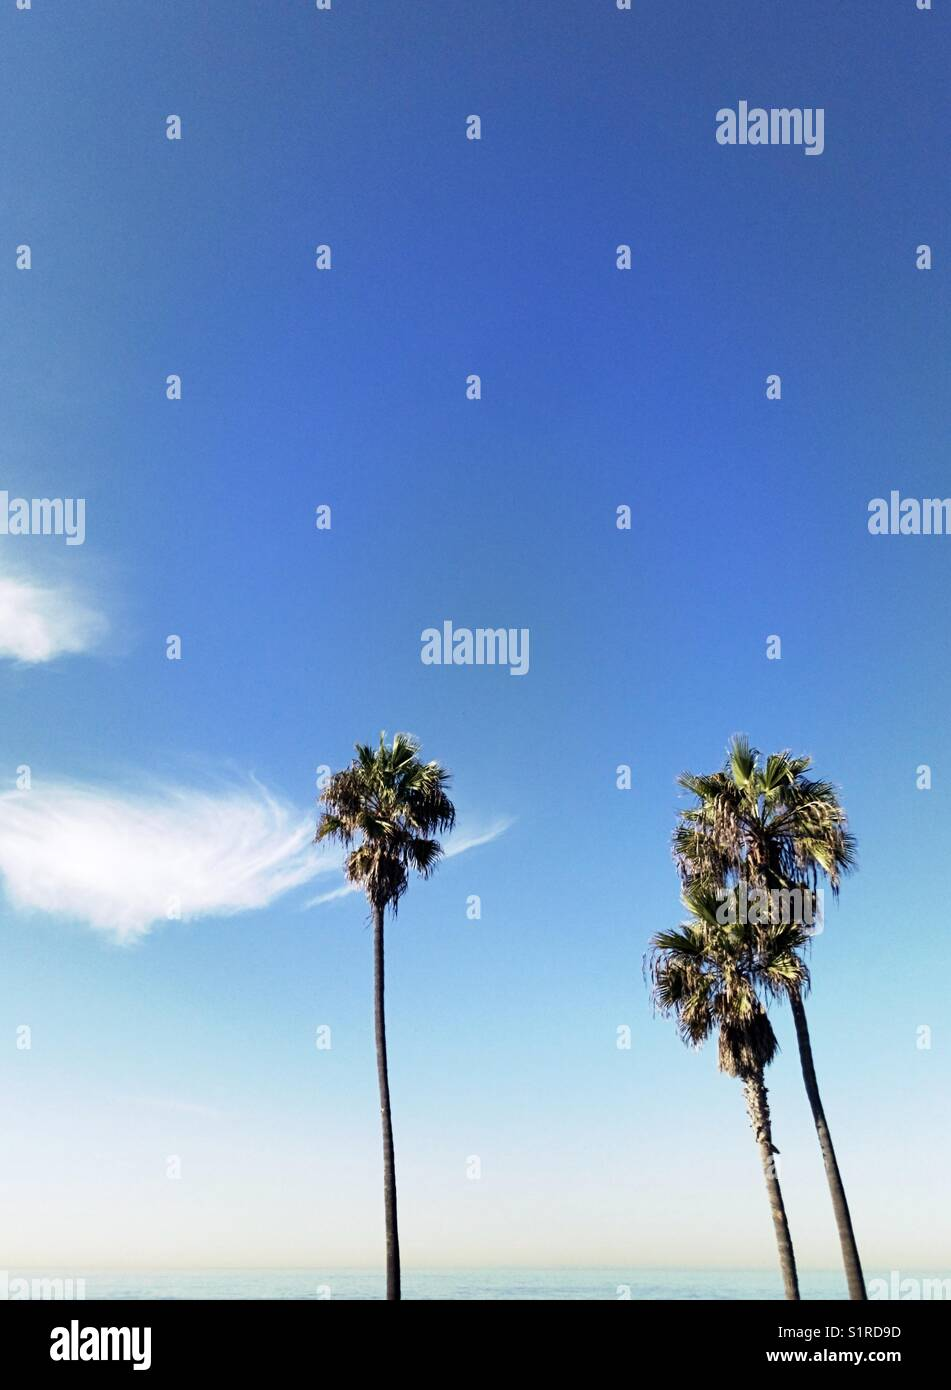 Three palm trees on a clear sunny day. Manhattan Beach, California USA. - Stock Image